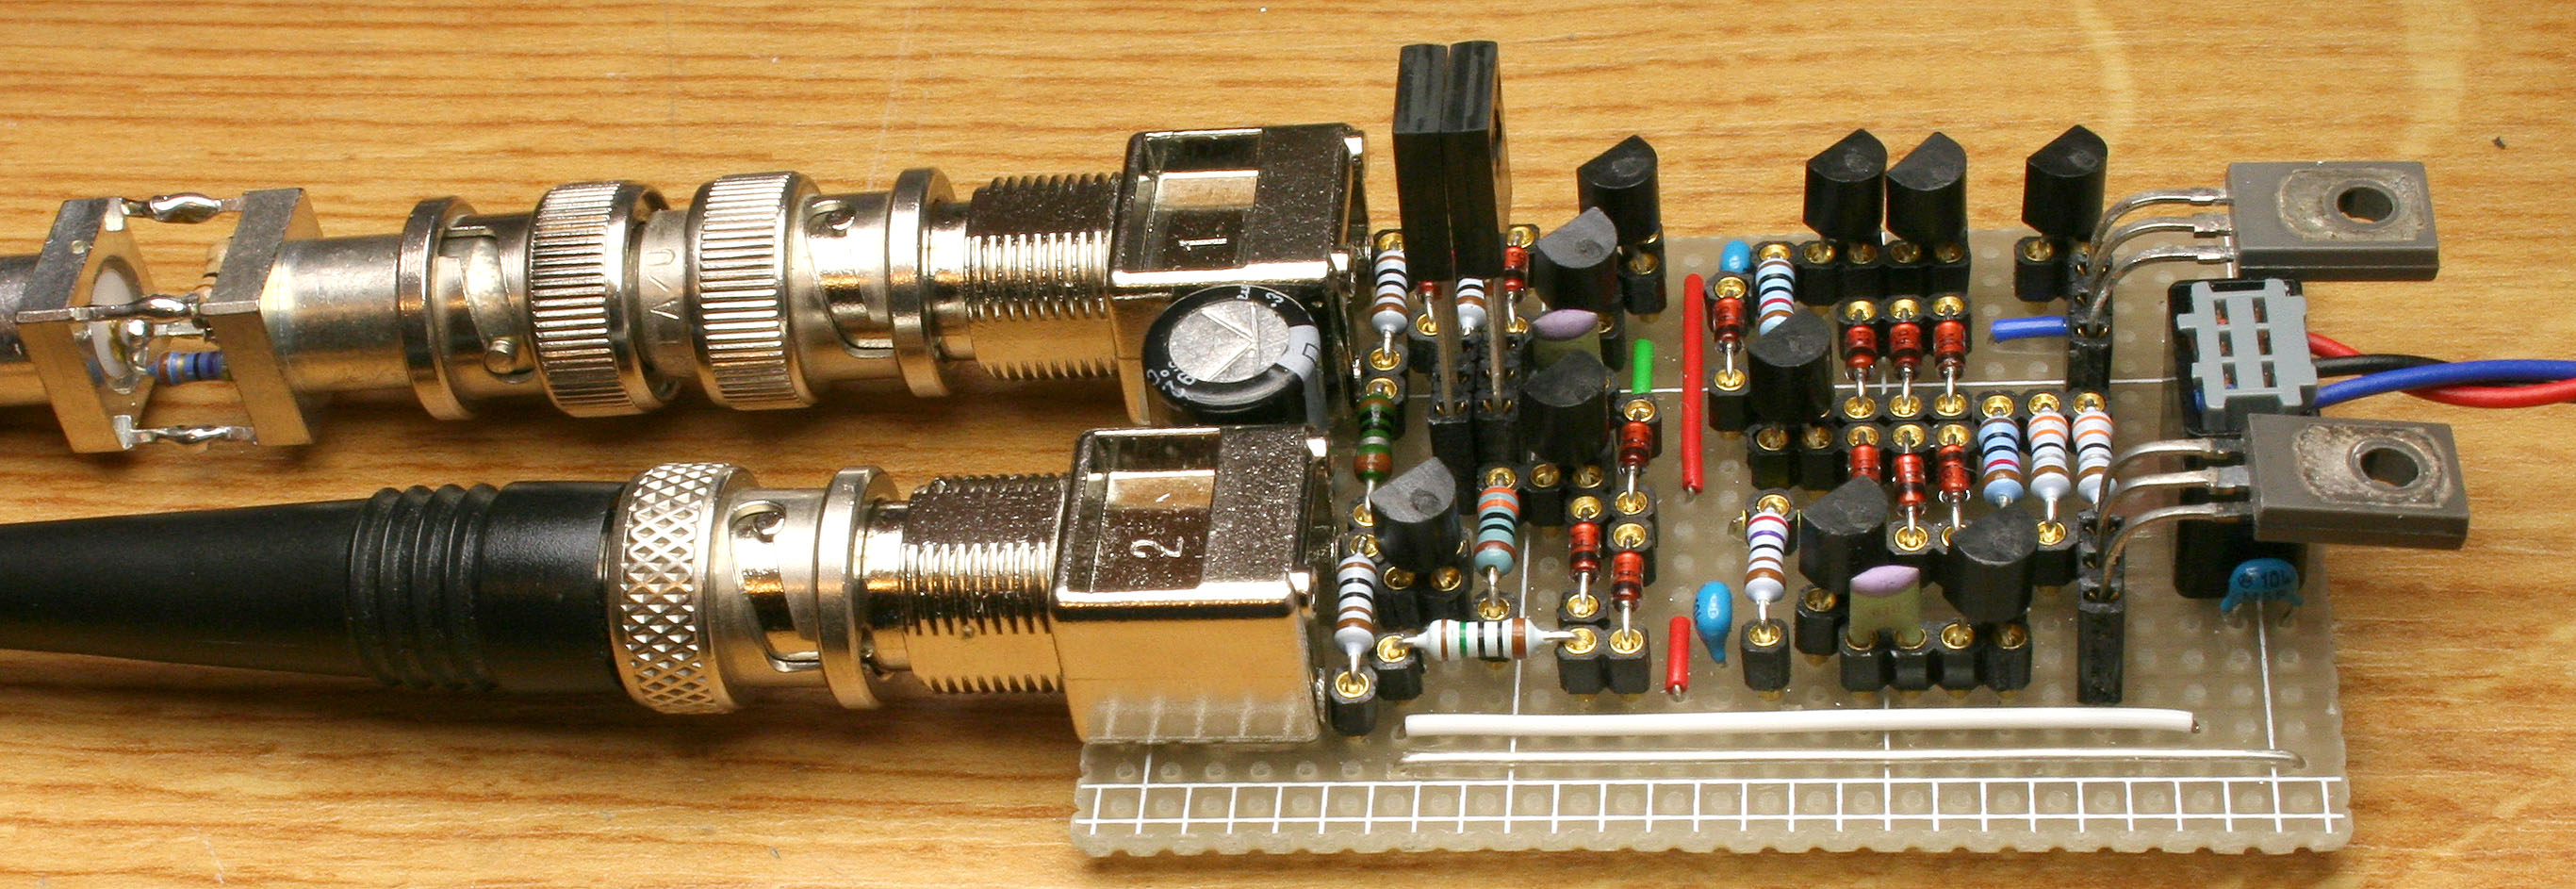 Extreme Low Noise Preampifier Lm324 Op Amp Http Wwwpic2flycom Lm324opamphtml The Prototype Click To Enlarge